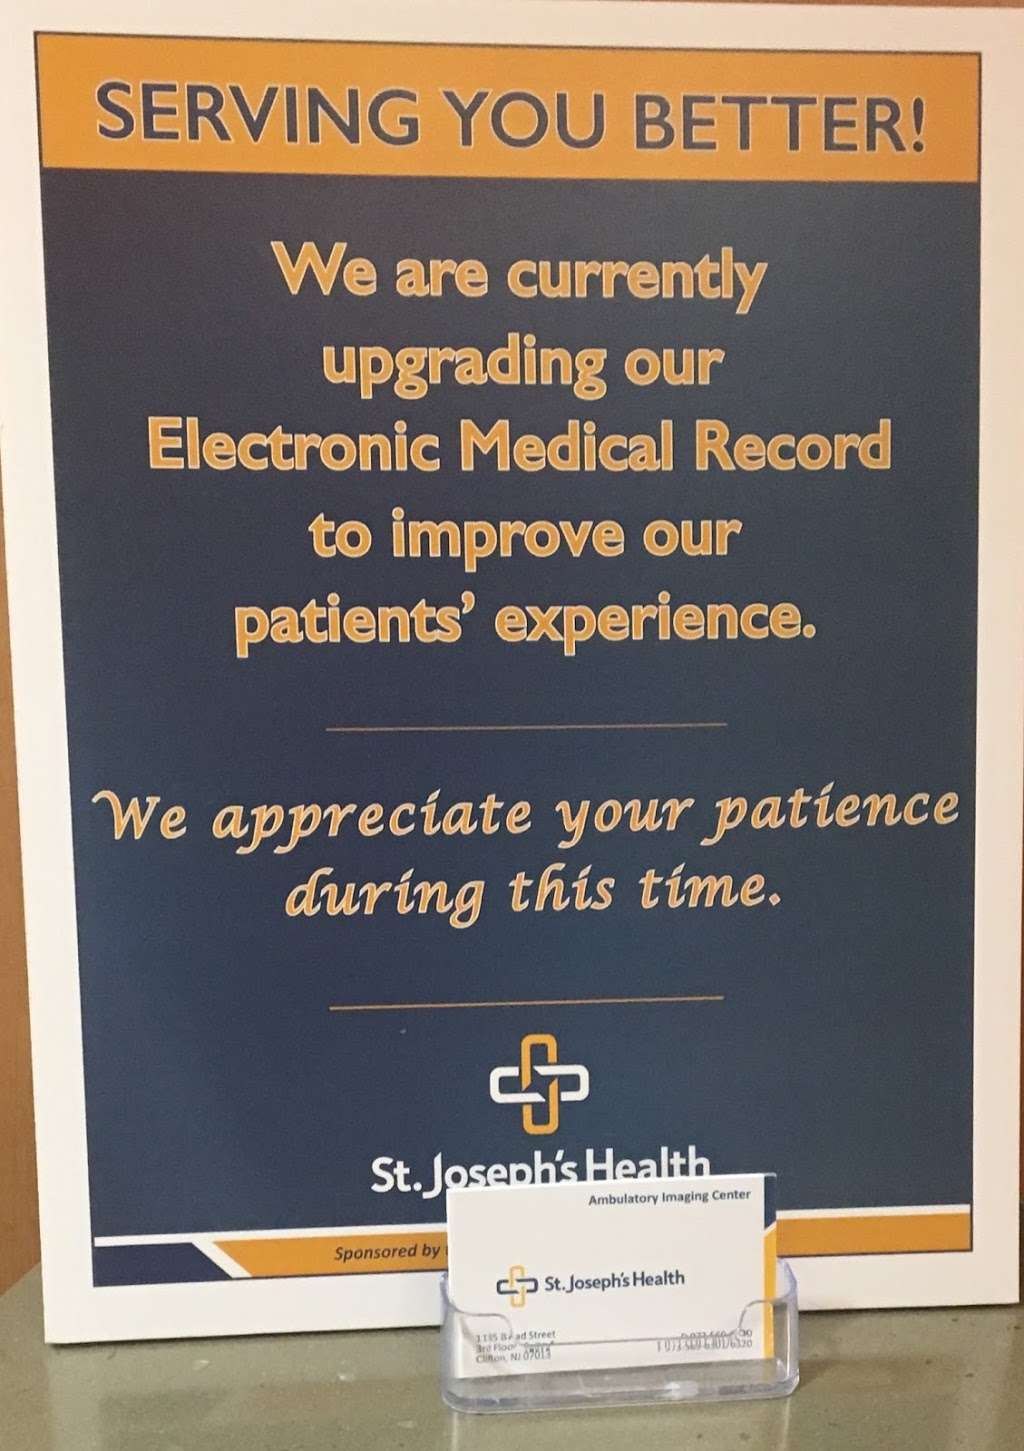 St. Josephs Ambulatory Imaging Center - health  | Photo 3 of 9 | Address: 1135 Broad St #4, Clifton, NJ 07013, USA | Phone: (973) 569-6300